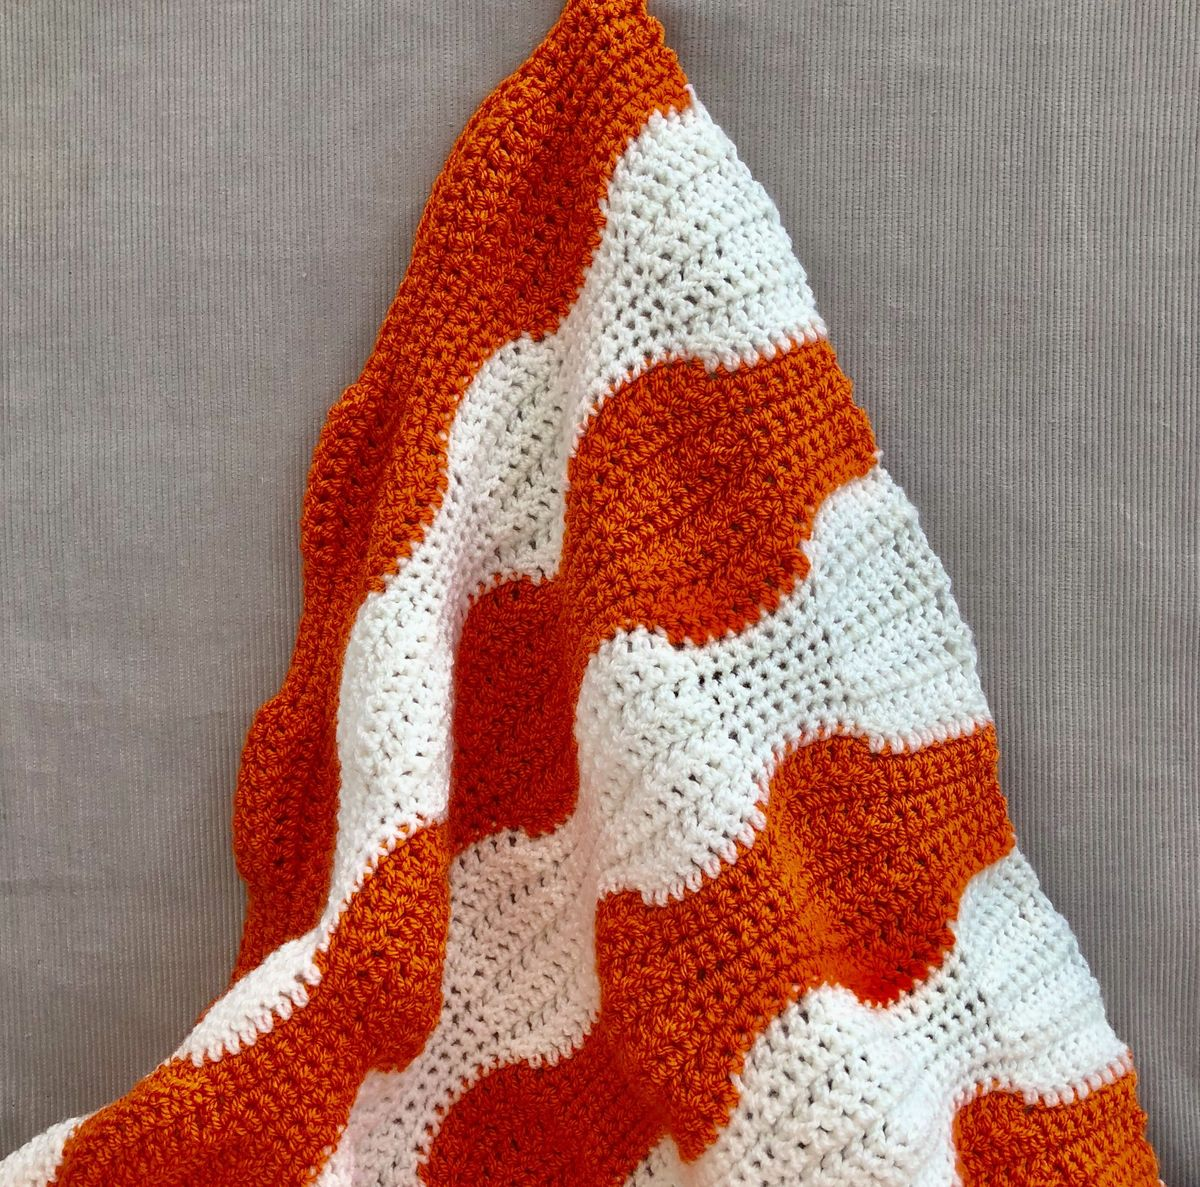 Contemporary baby blanket, orange and white - product images  of